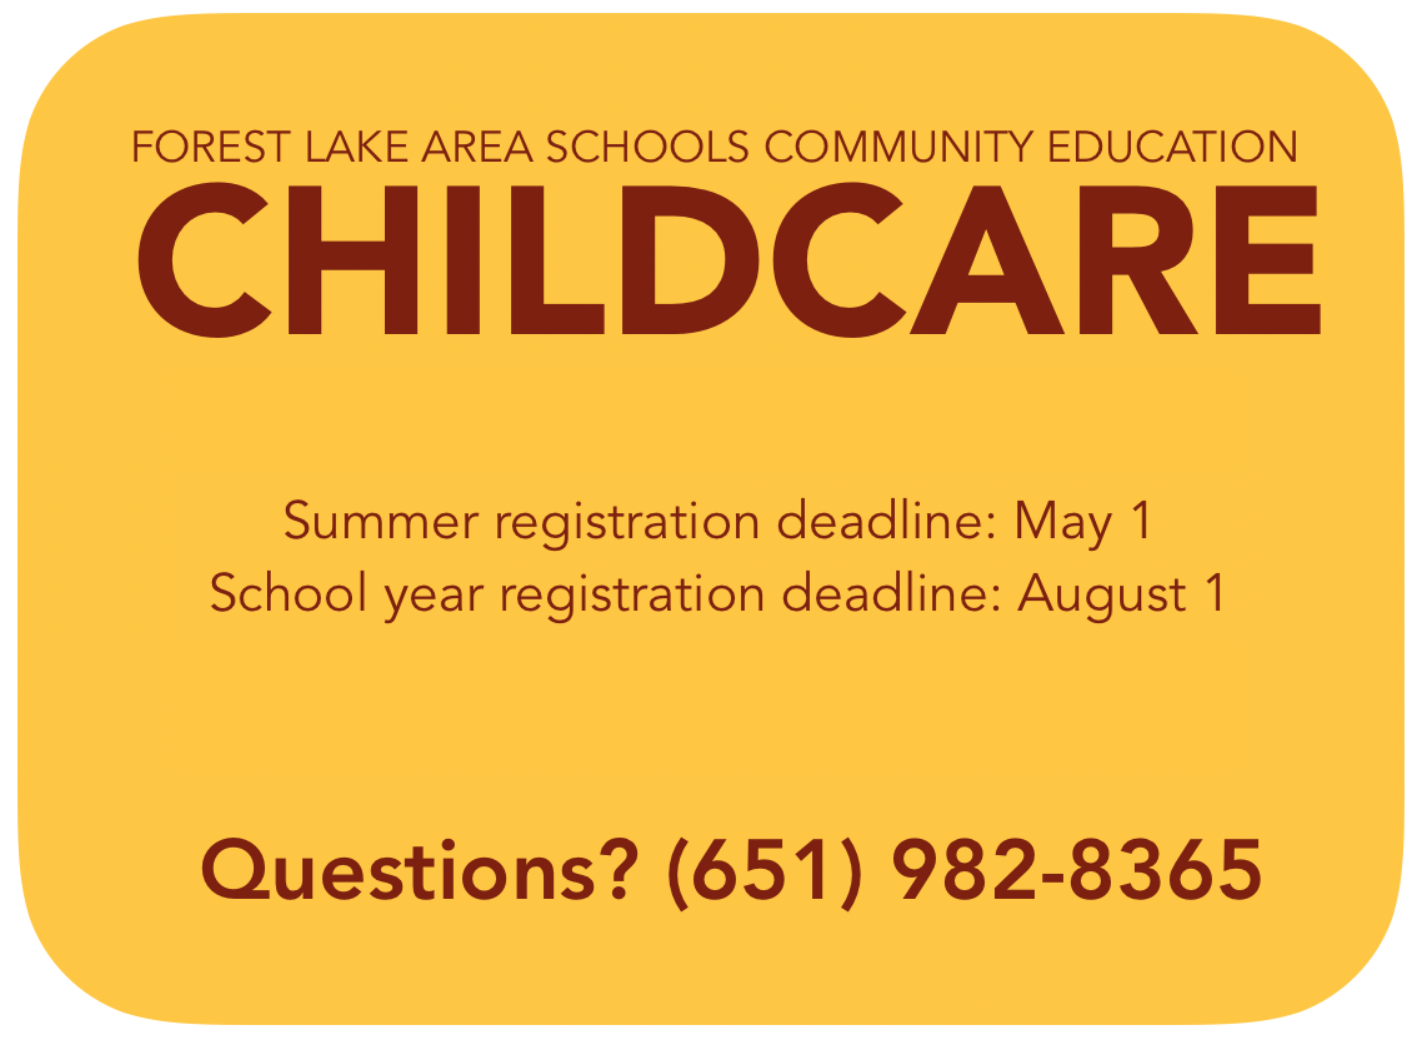 Childcare, Questions call 651 982 8365